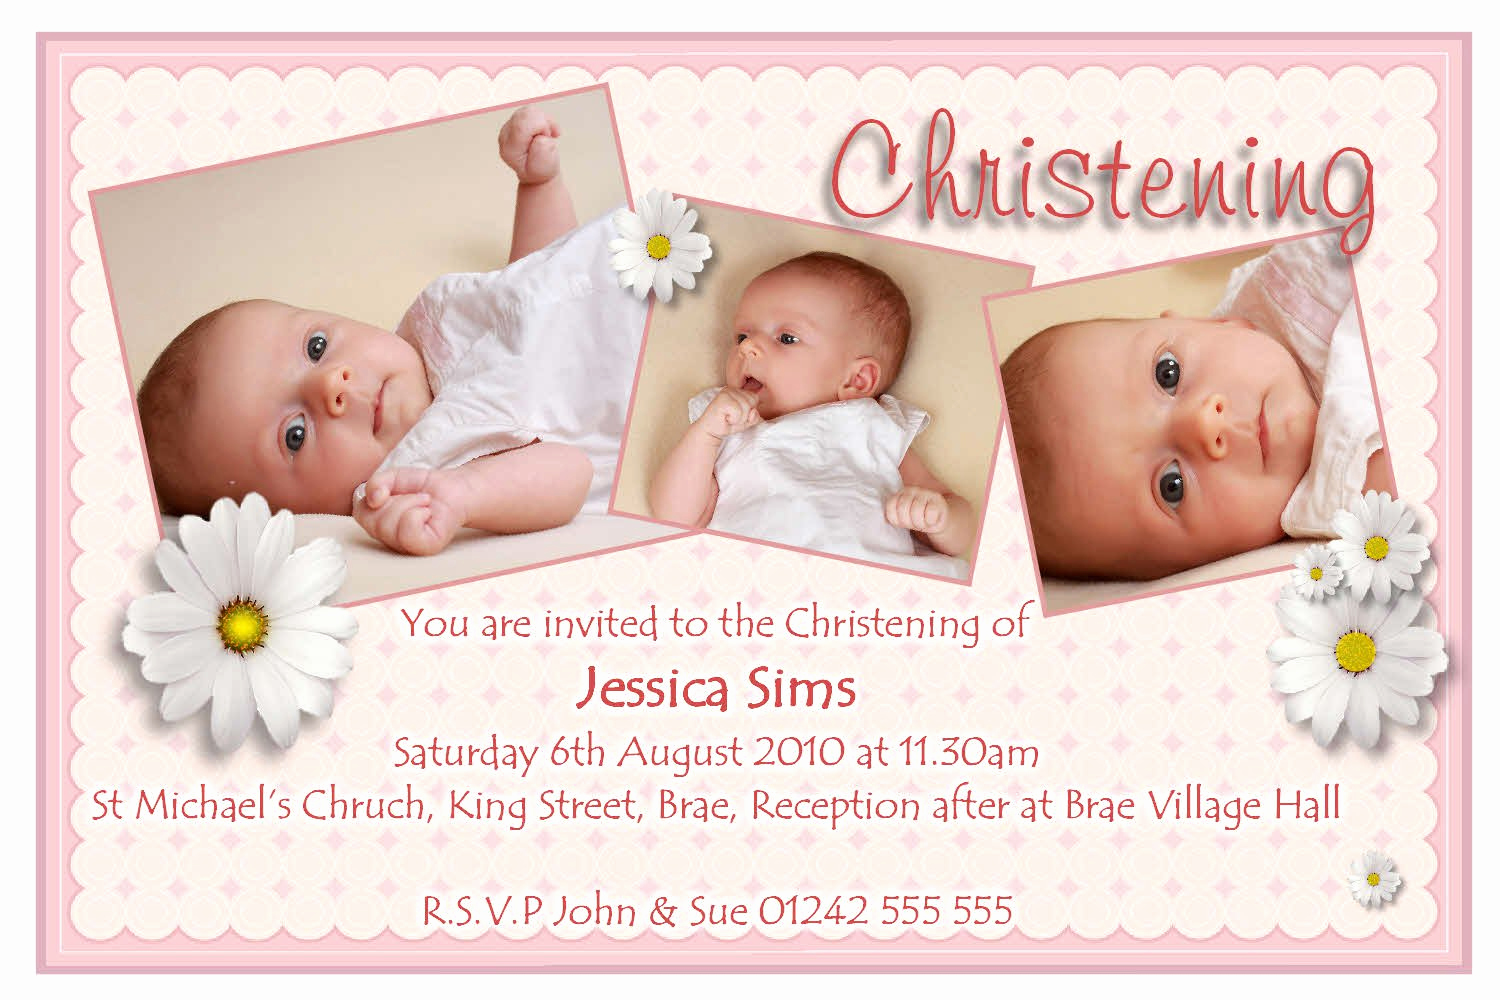 Christening Invitation for Baby Boy Inspirational Best Baptism Invitations Best Christening Invitations Uk